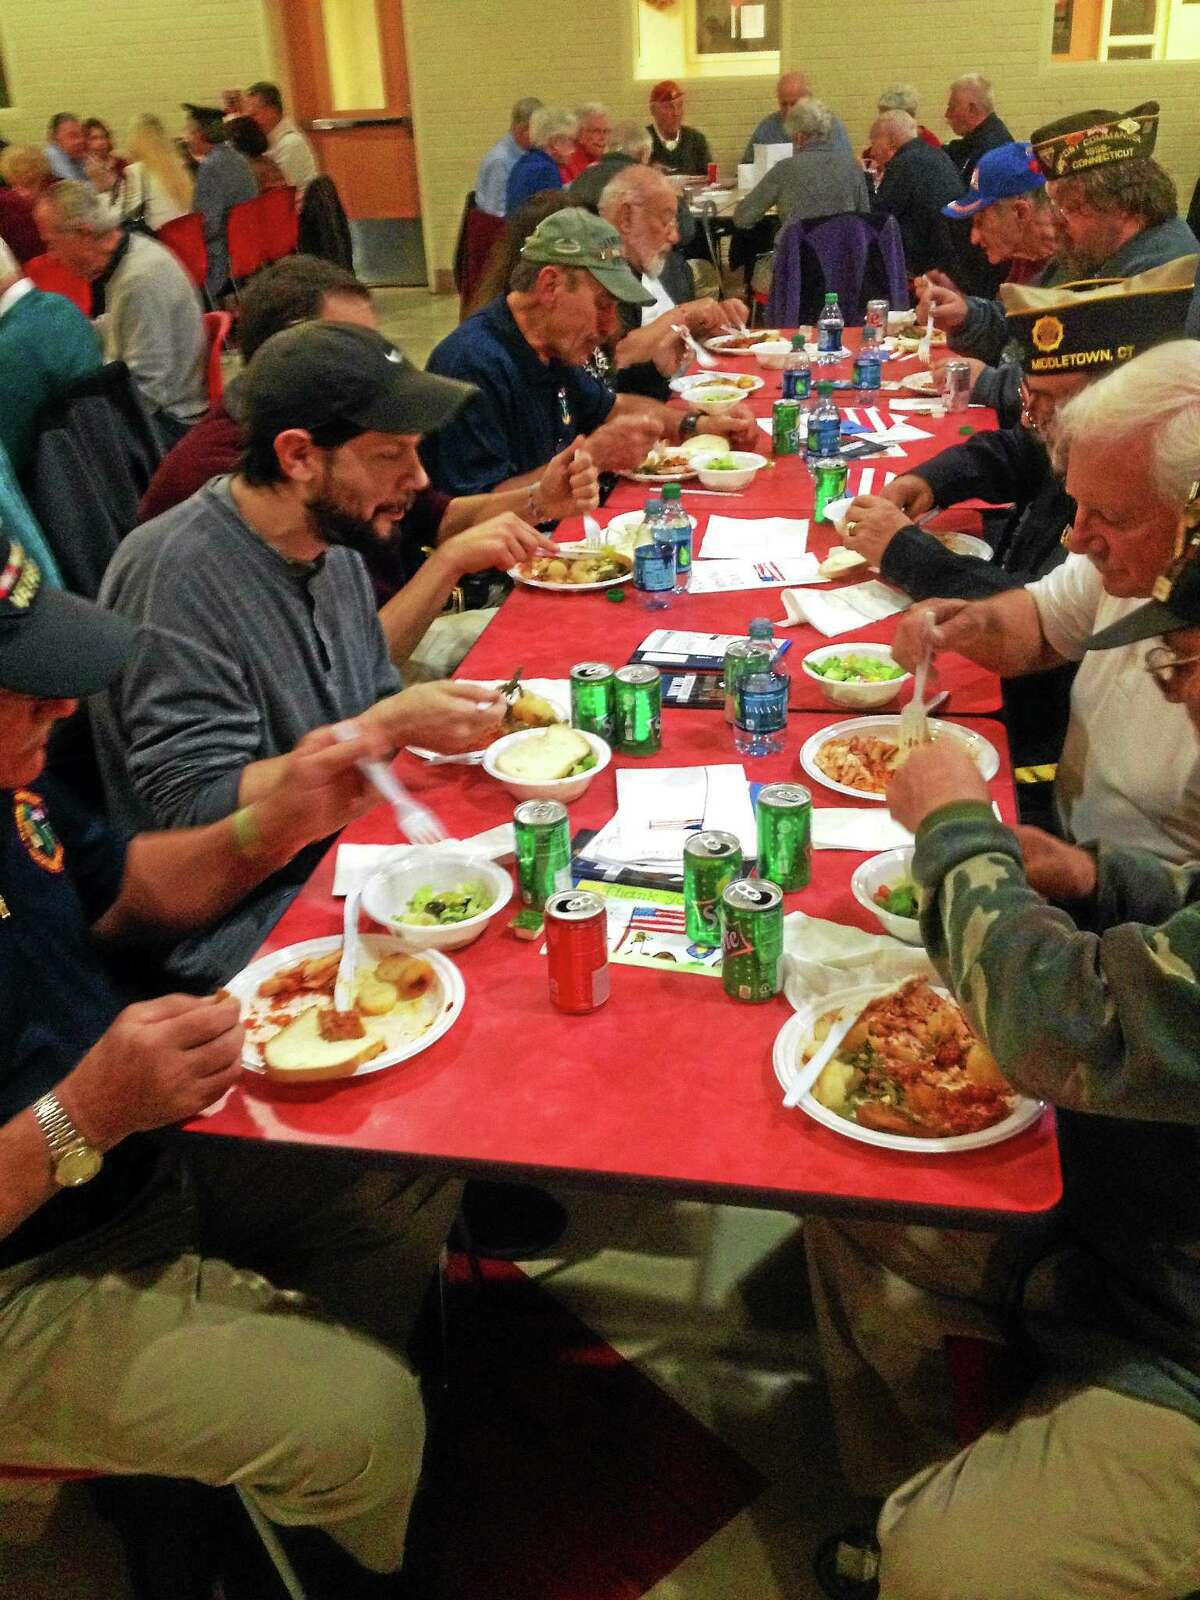 Veterans enjoyed chicken parmigiana, potatoes, green beans and shells with red sauce at the fifth annual Portland Veterans Day meal on Tuesday at the high school.